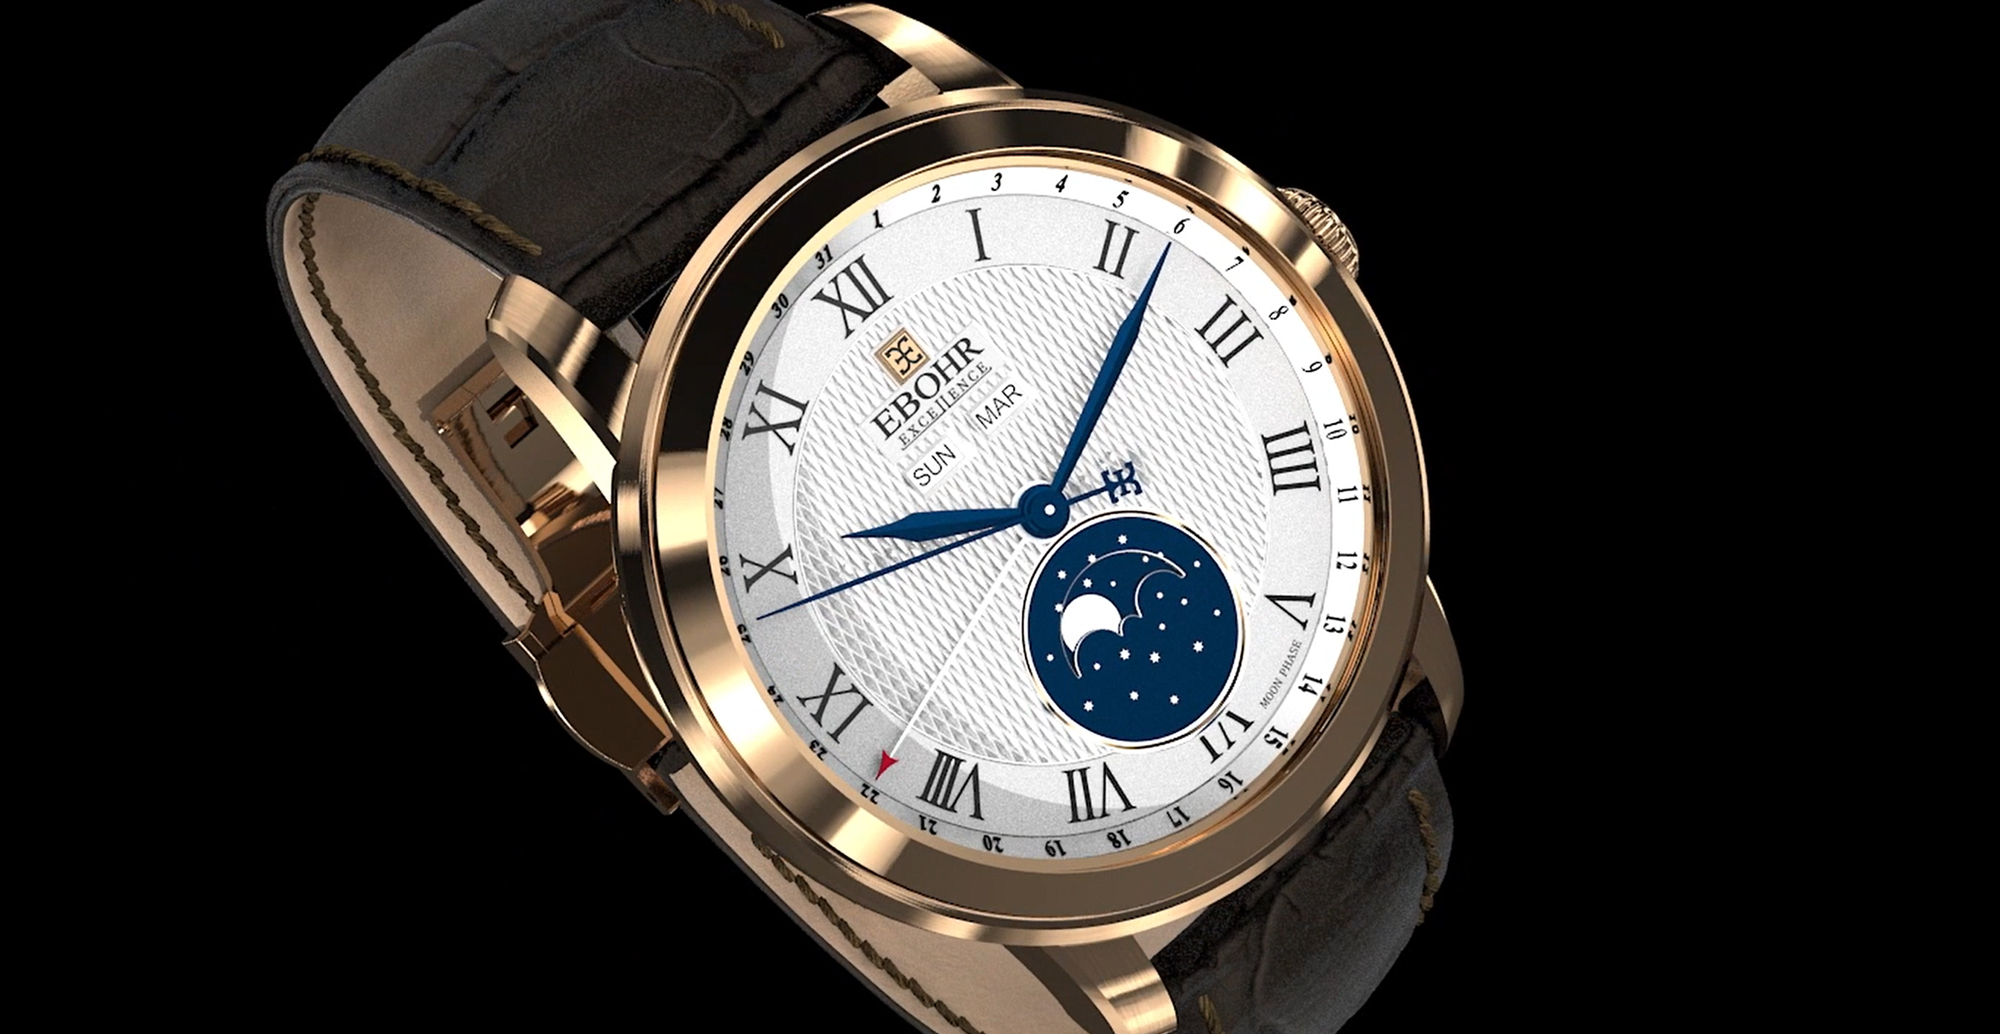 Montre EXCELENCE